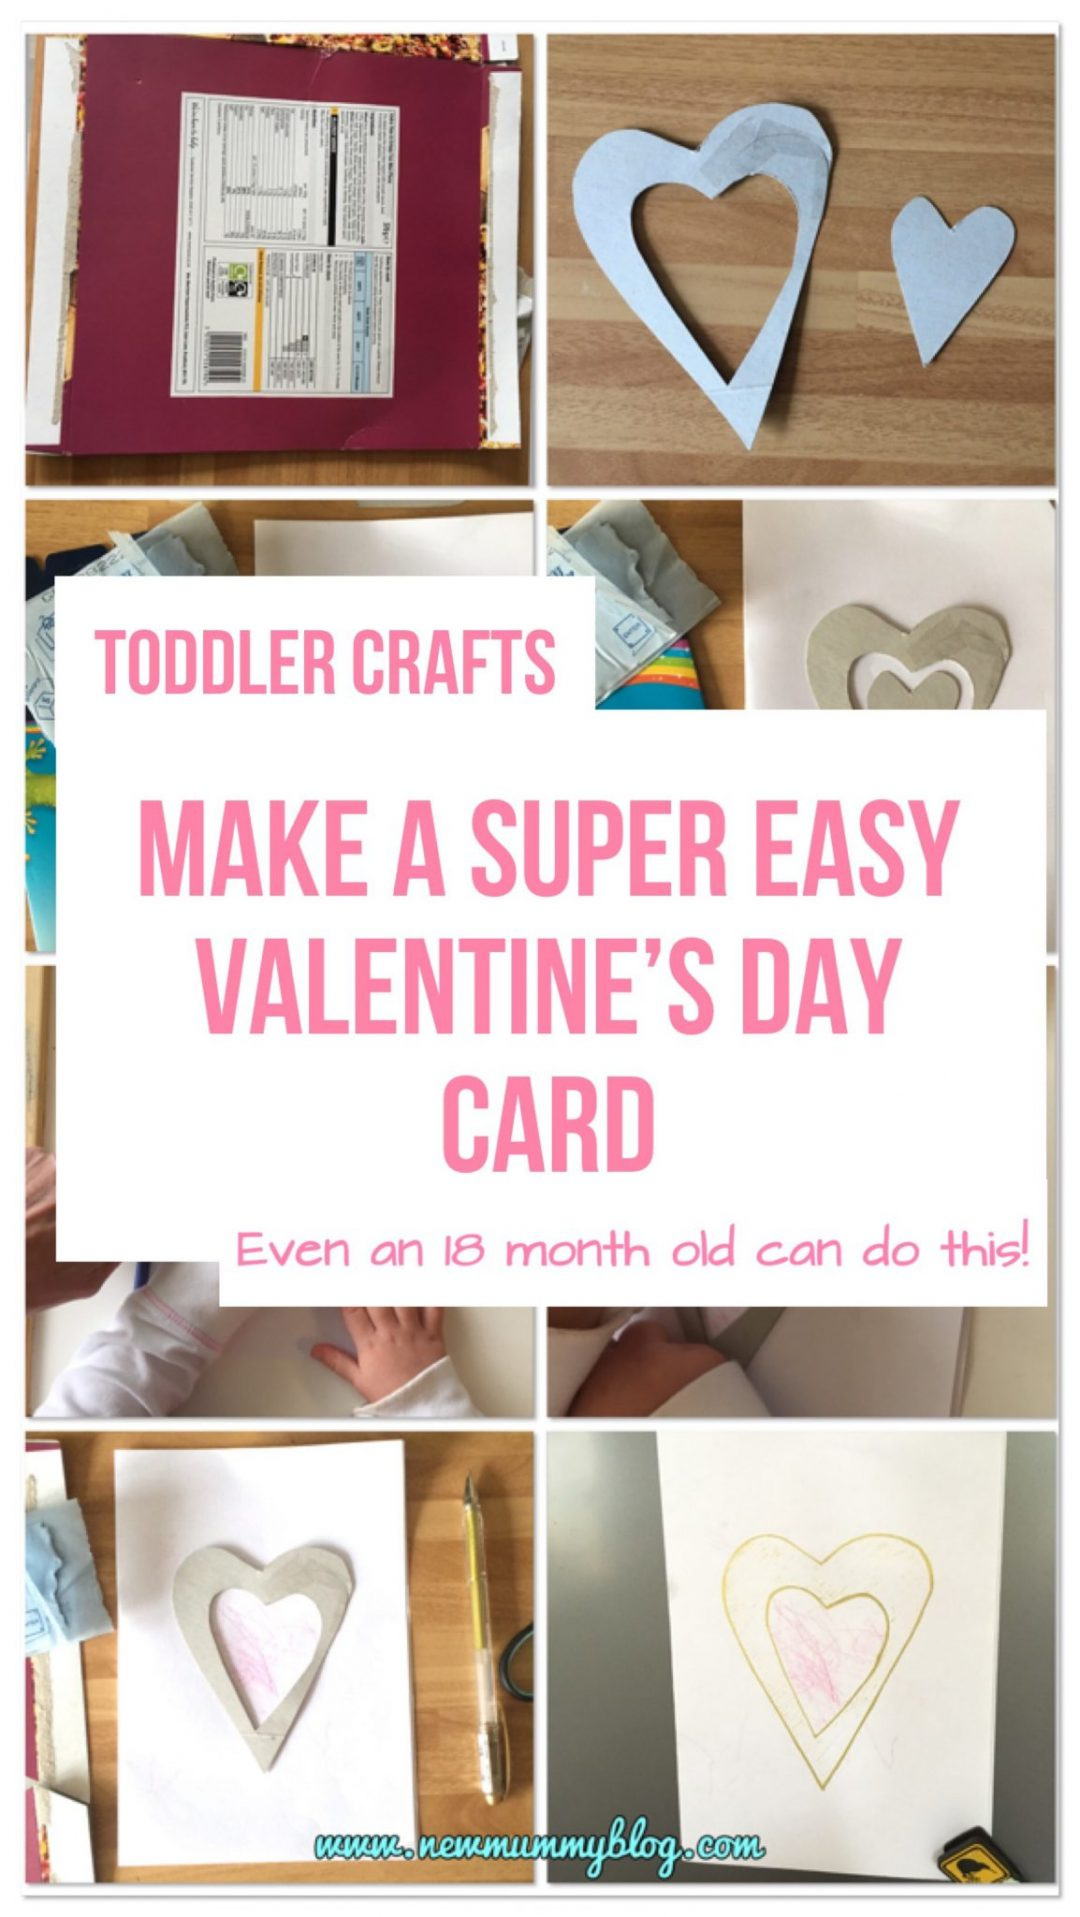 How a toddler can make a Valentine's Day card using crayons and a stencil! Also great for parents too and preschoolers